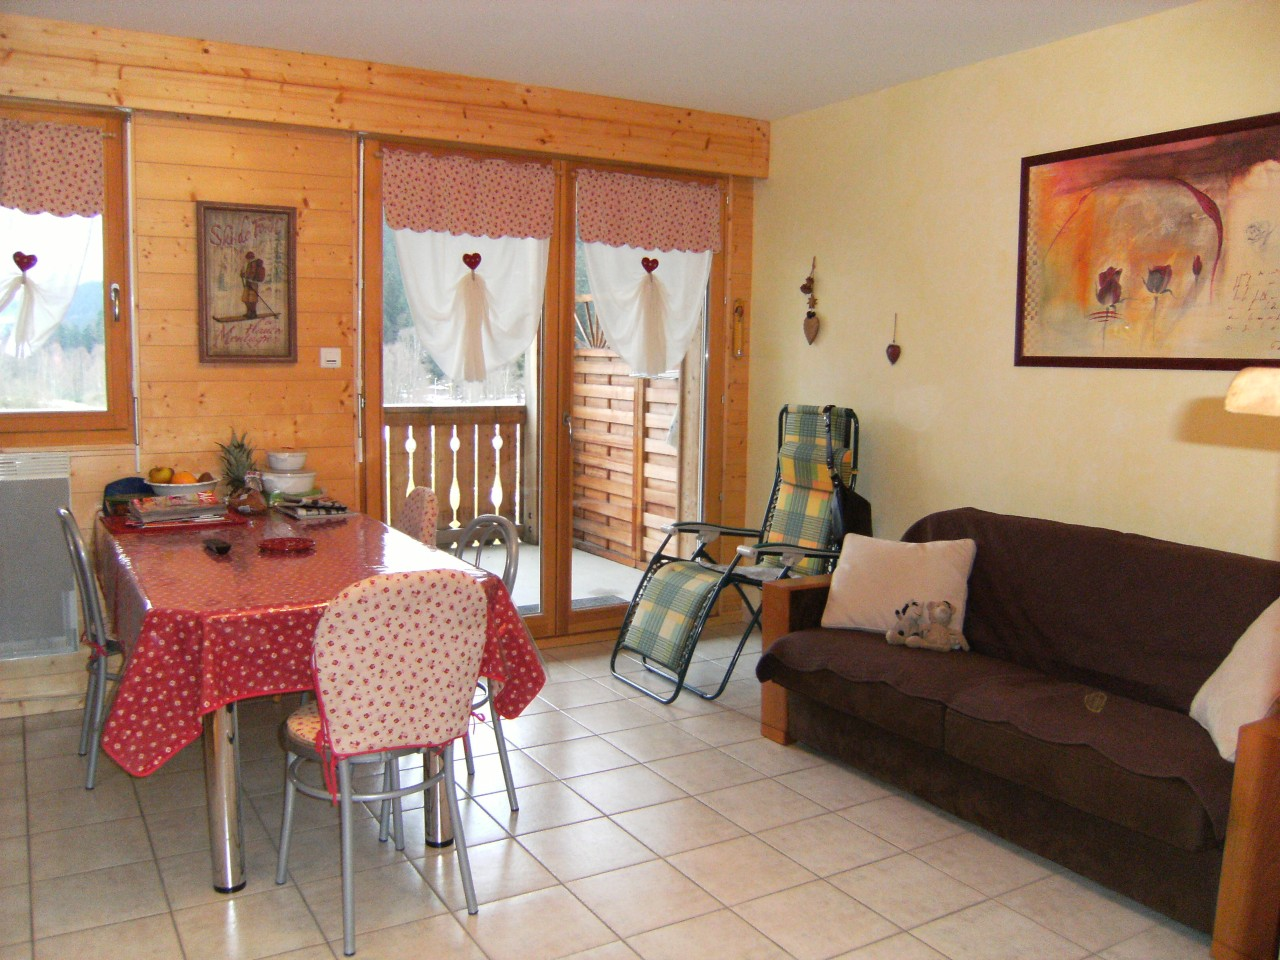 Agence immobili re g rardmer annonce appartements n 2138 for Agence immobiliere gerardmer